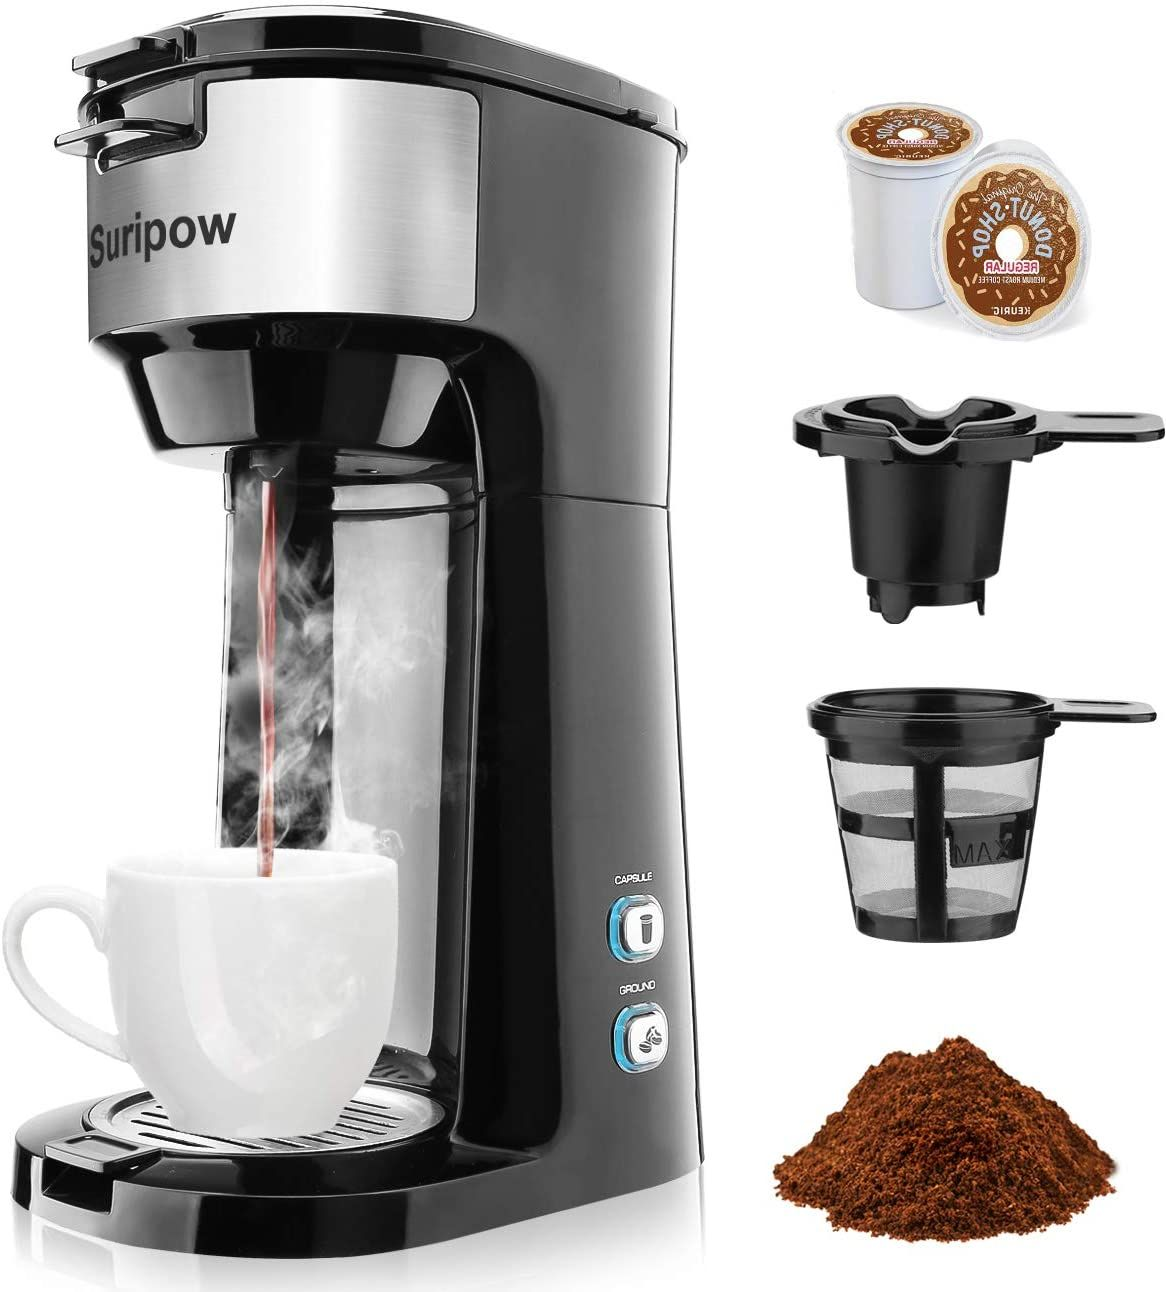 Highlight Features Reviews Single Serve Coffee Maker For K Cup Pod Ground Coffee ในป 2020